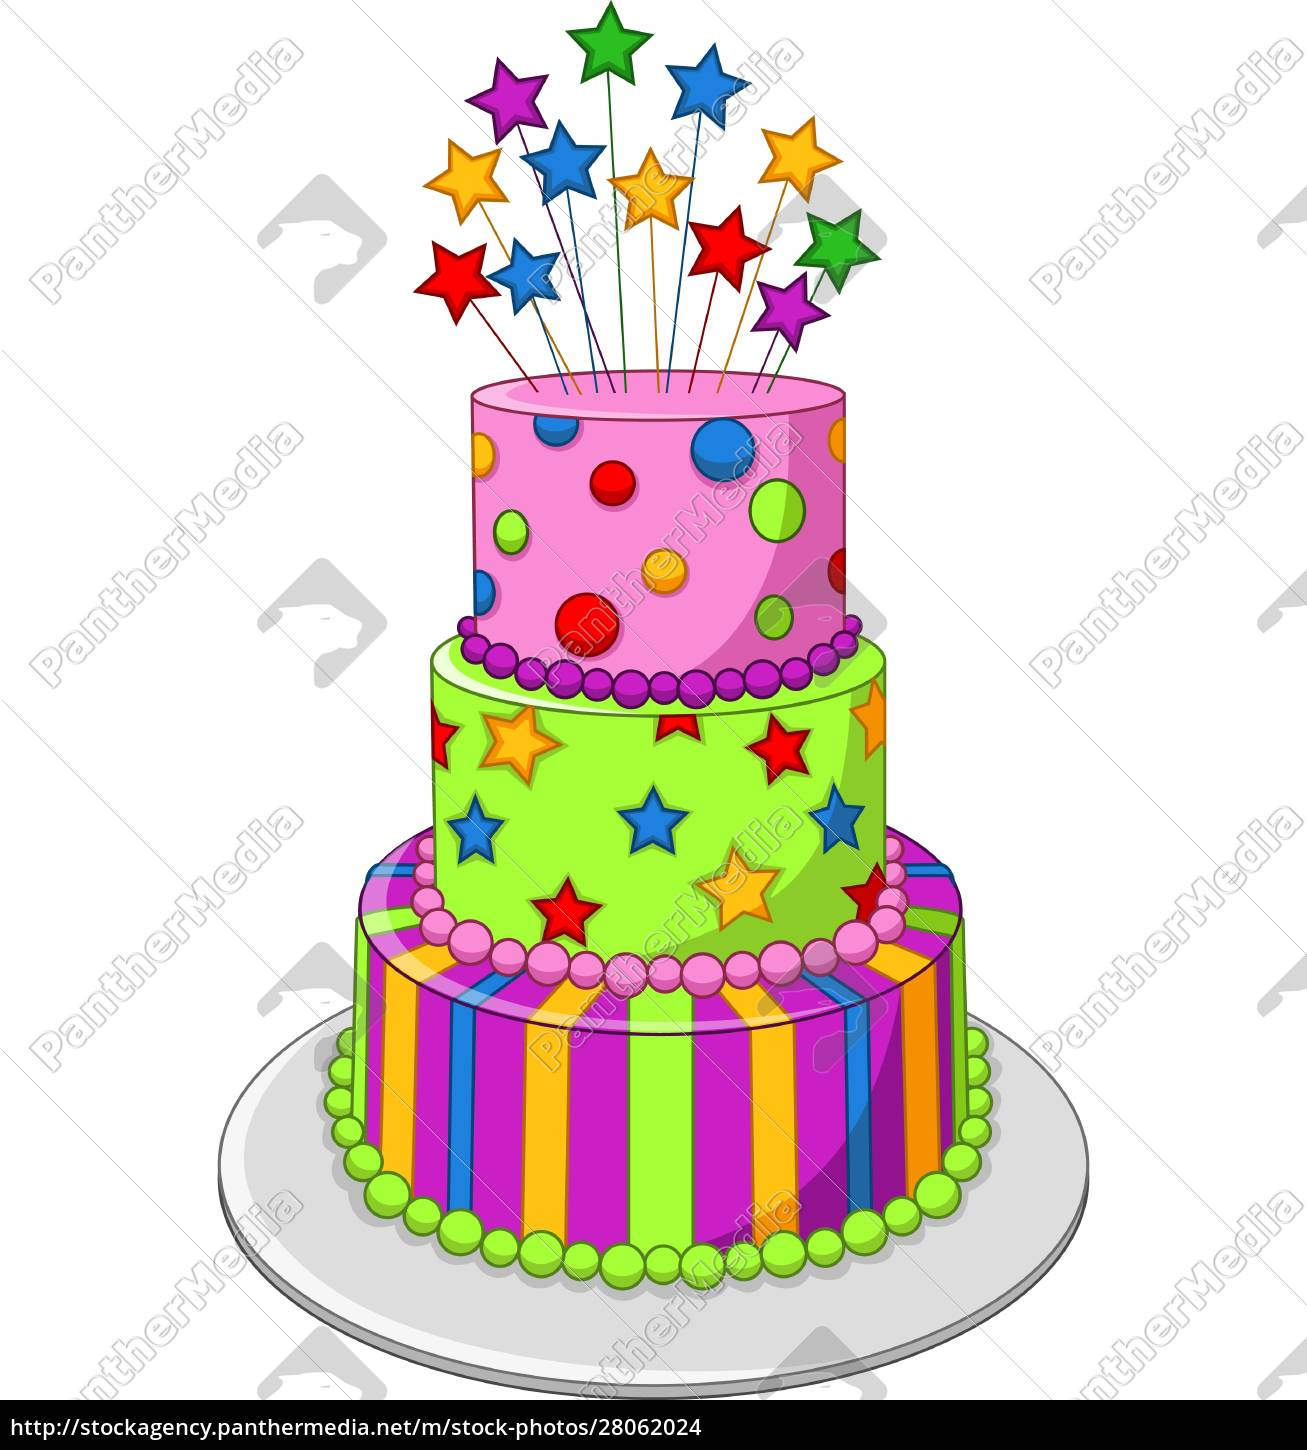 colorful, birthday, cake, isolated, on, white - 28062024